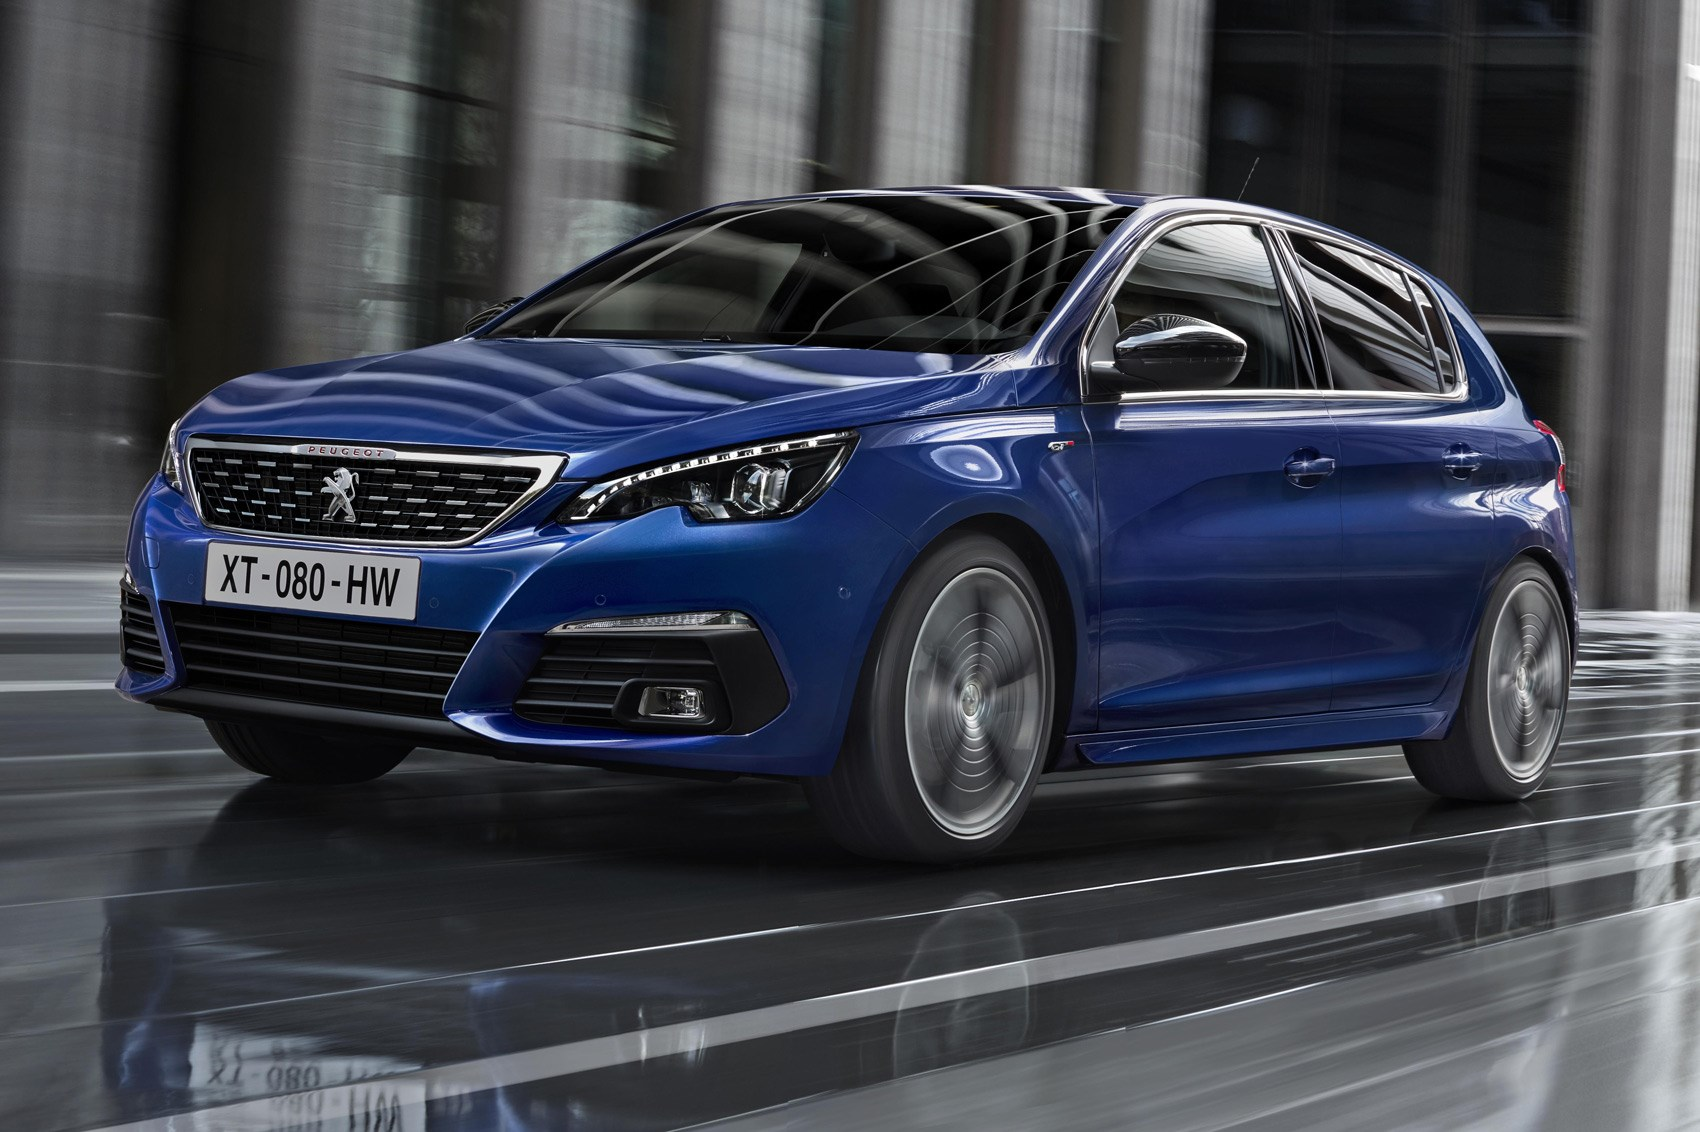 refreshed peugeot 308 hatch ready to pounce by car magazine. Black Bedroom Furniture Sets. Home Design Ideas